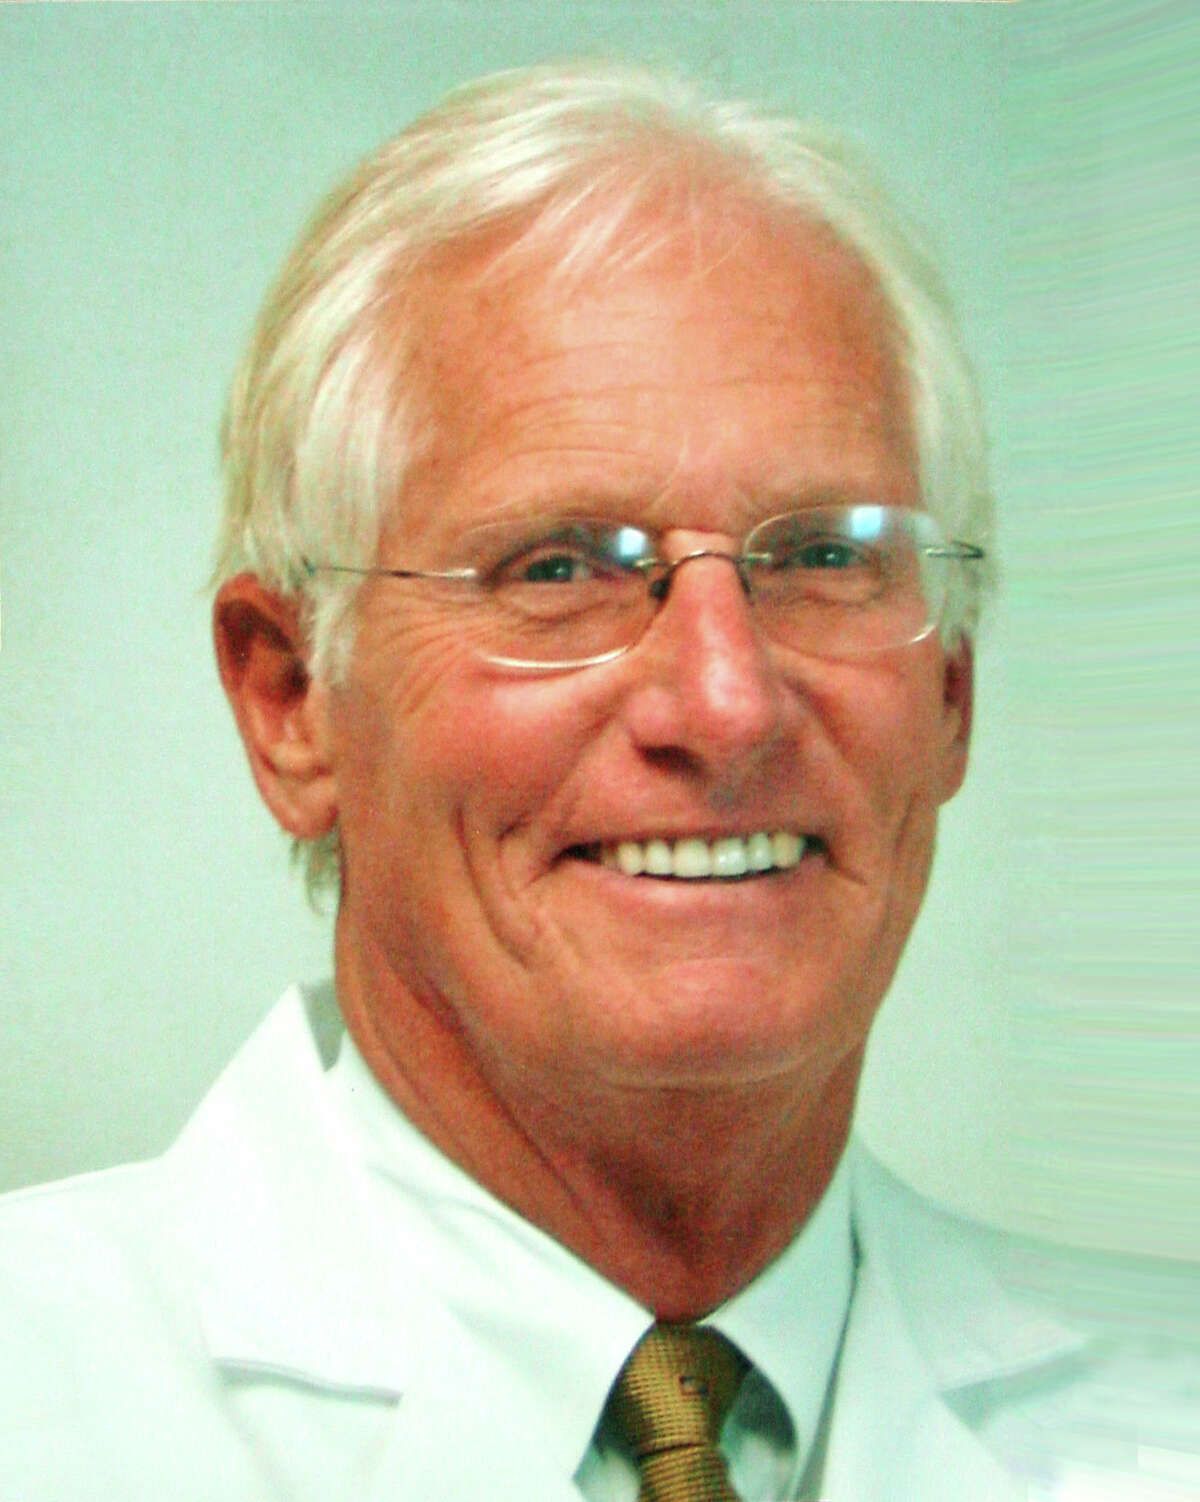 Edward V. Craig, of New Canaan, an orthopedic surgeon at the Hospital for Special Surgery, has been named one of the top 28 shoulder surgeons in North America by Orthopedics This Week.